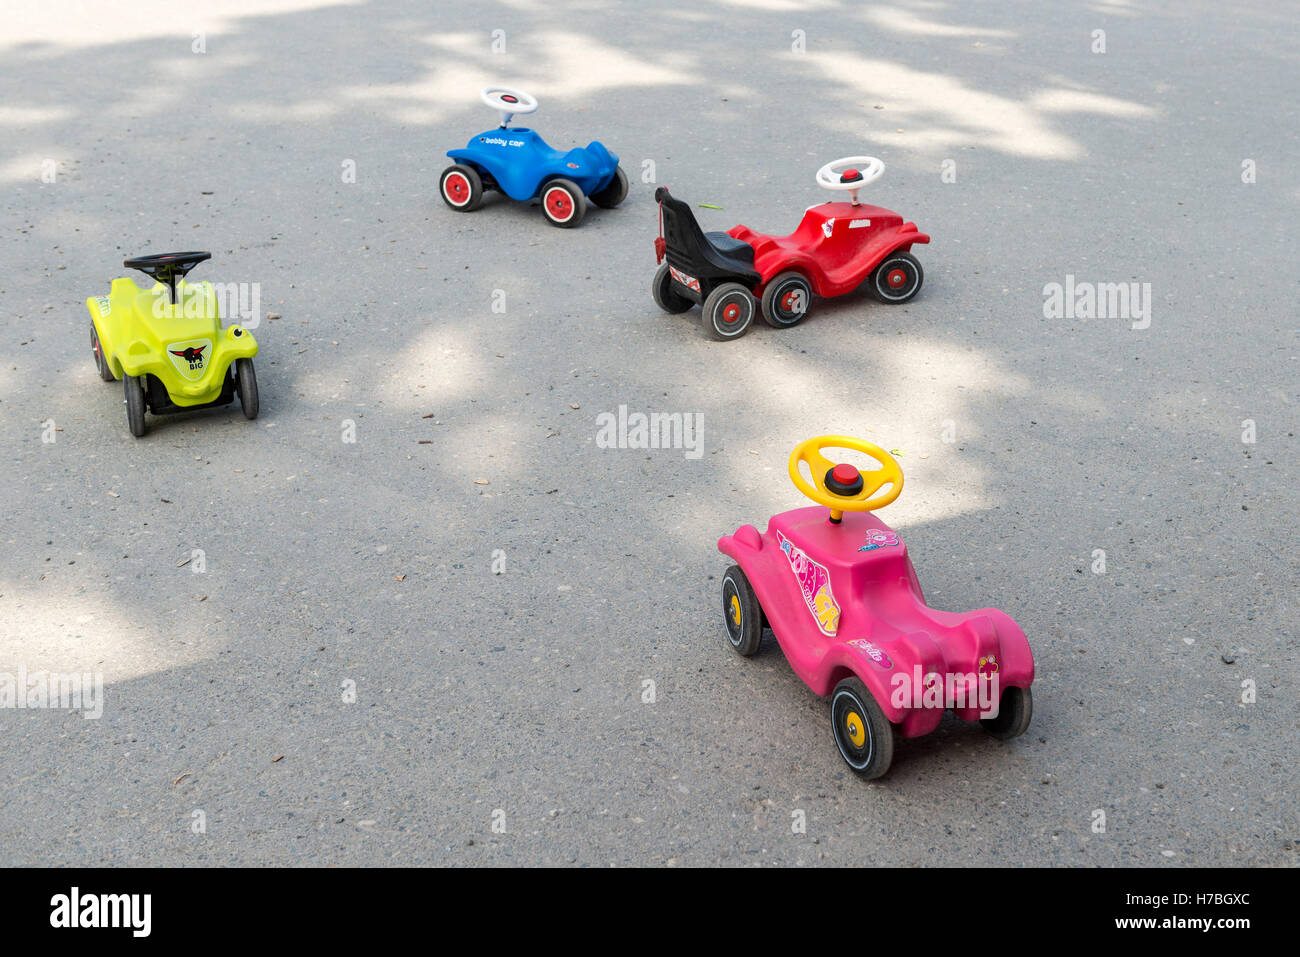 Toy Cars for Children - Stock Image